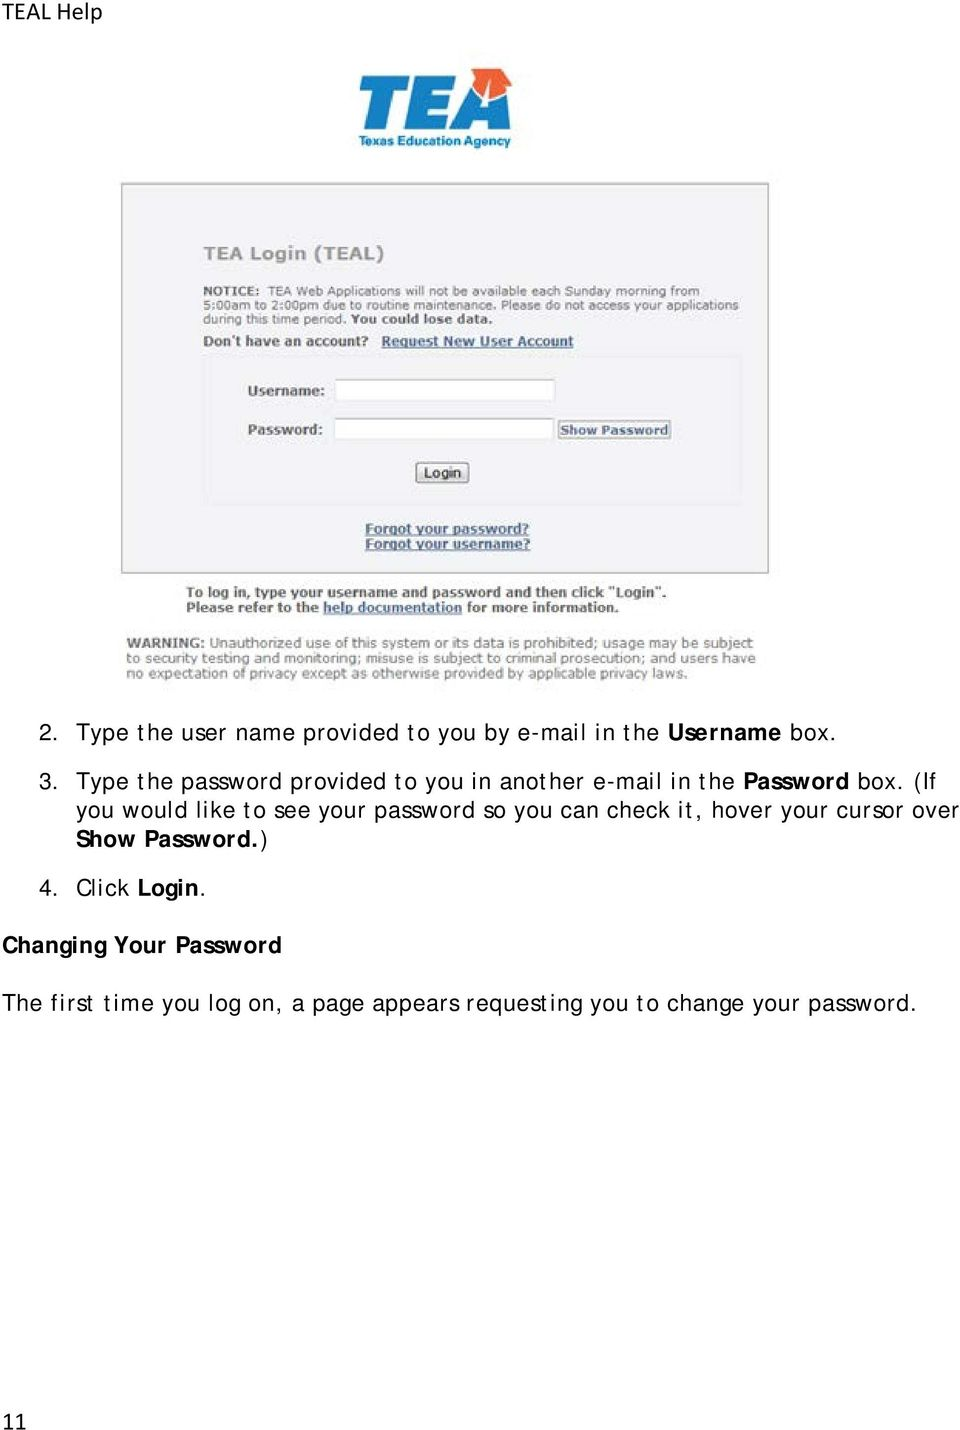 (If you would like to see your password so you can check it, hover your cursor over Show